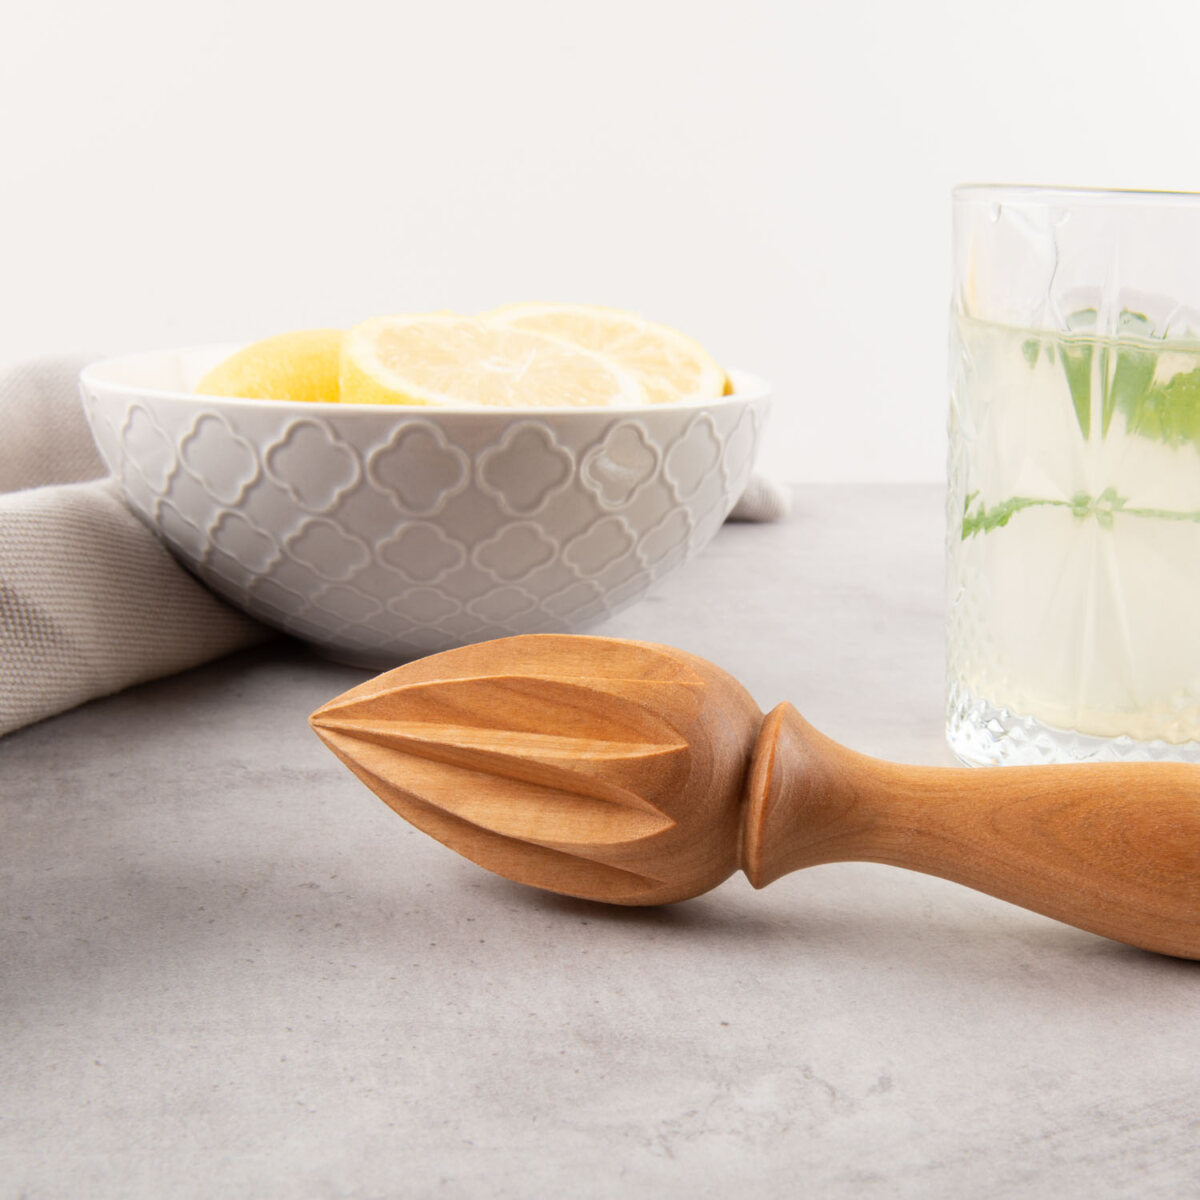 lemon lime squeezer